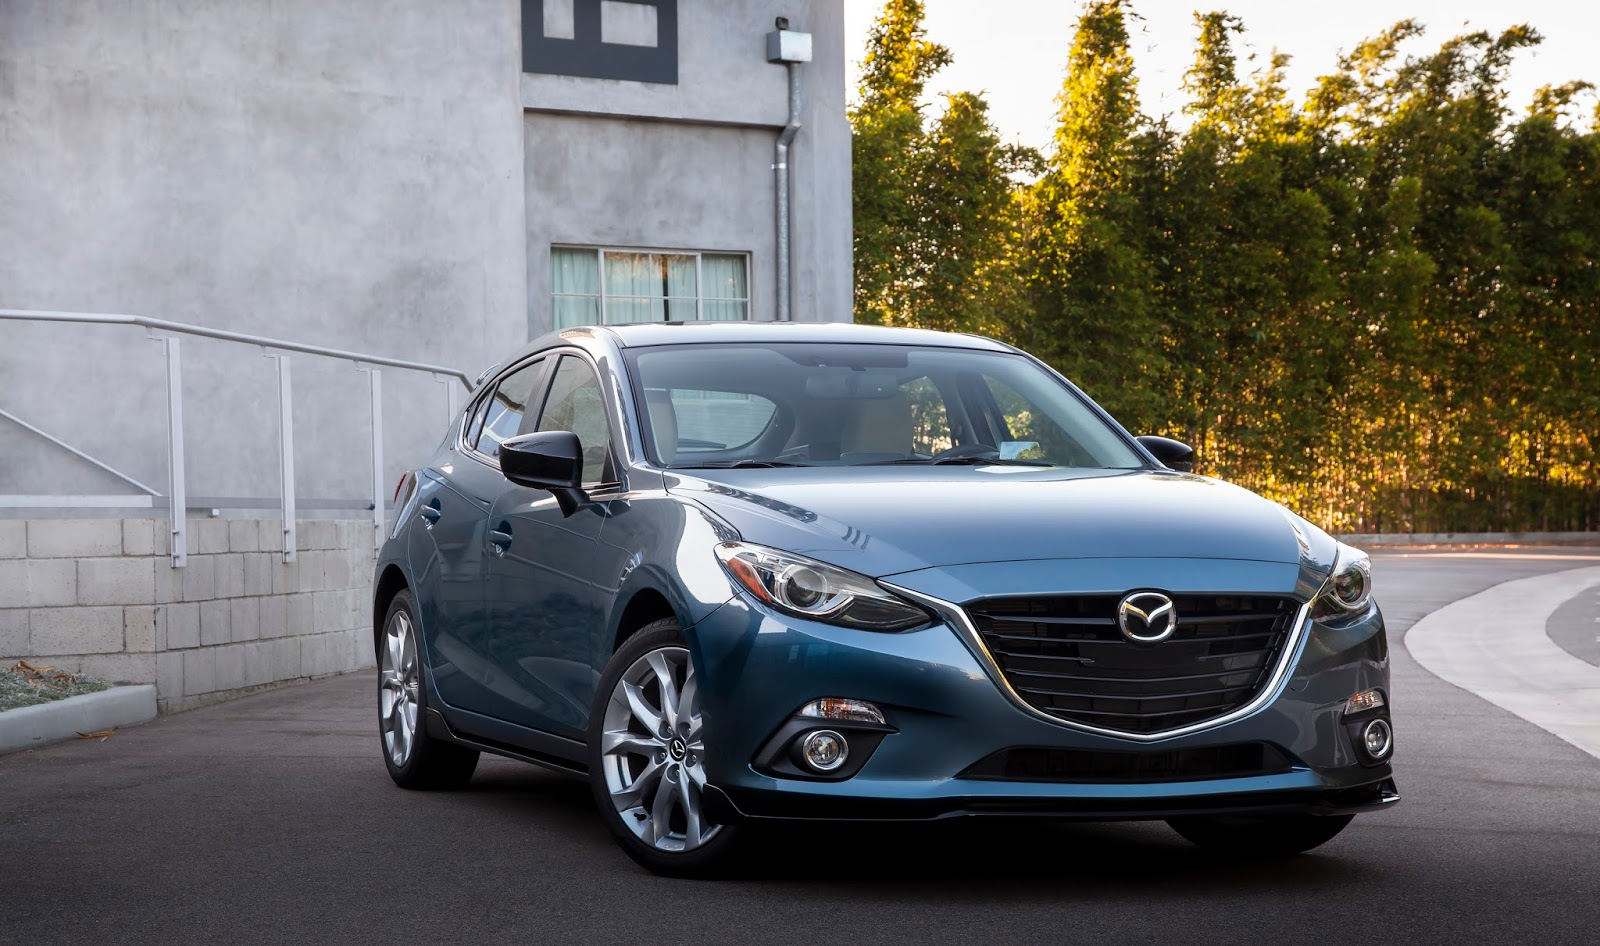 Costco To Costco On A Tank Of Gas: The 2016 Mazda 3 S 5 Door Grand Touring